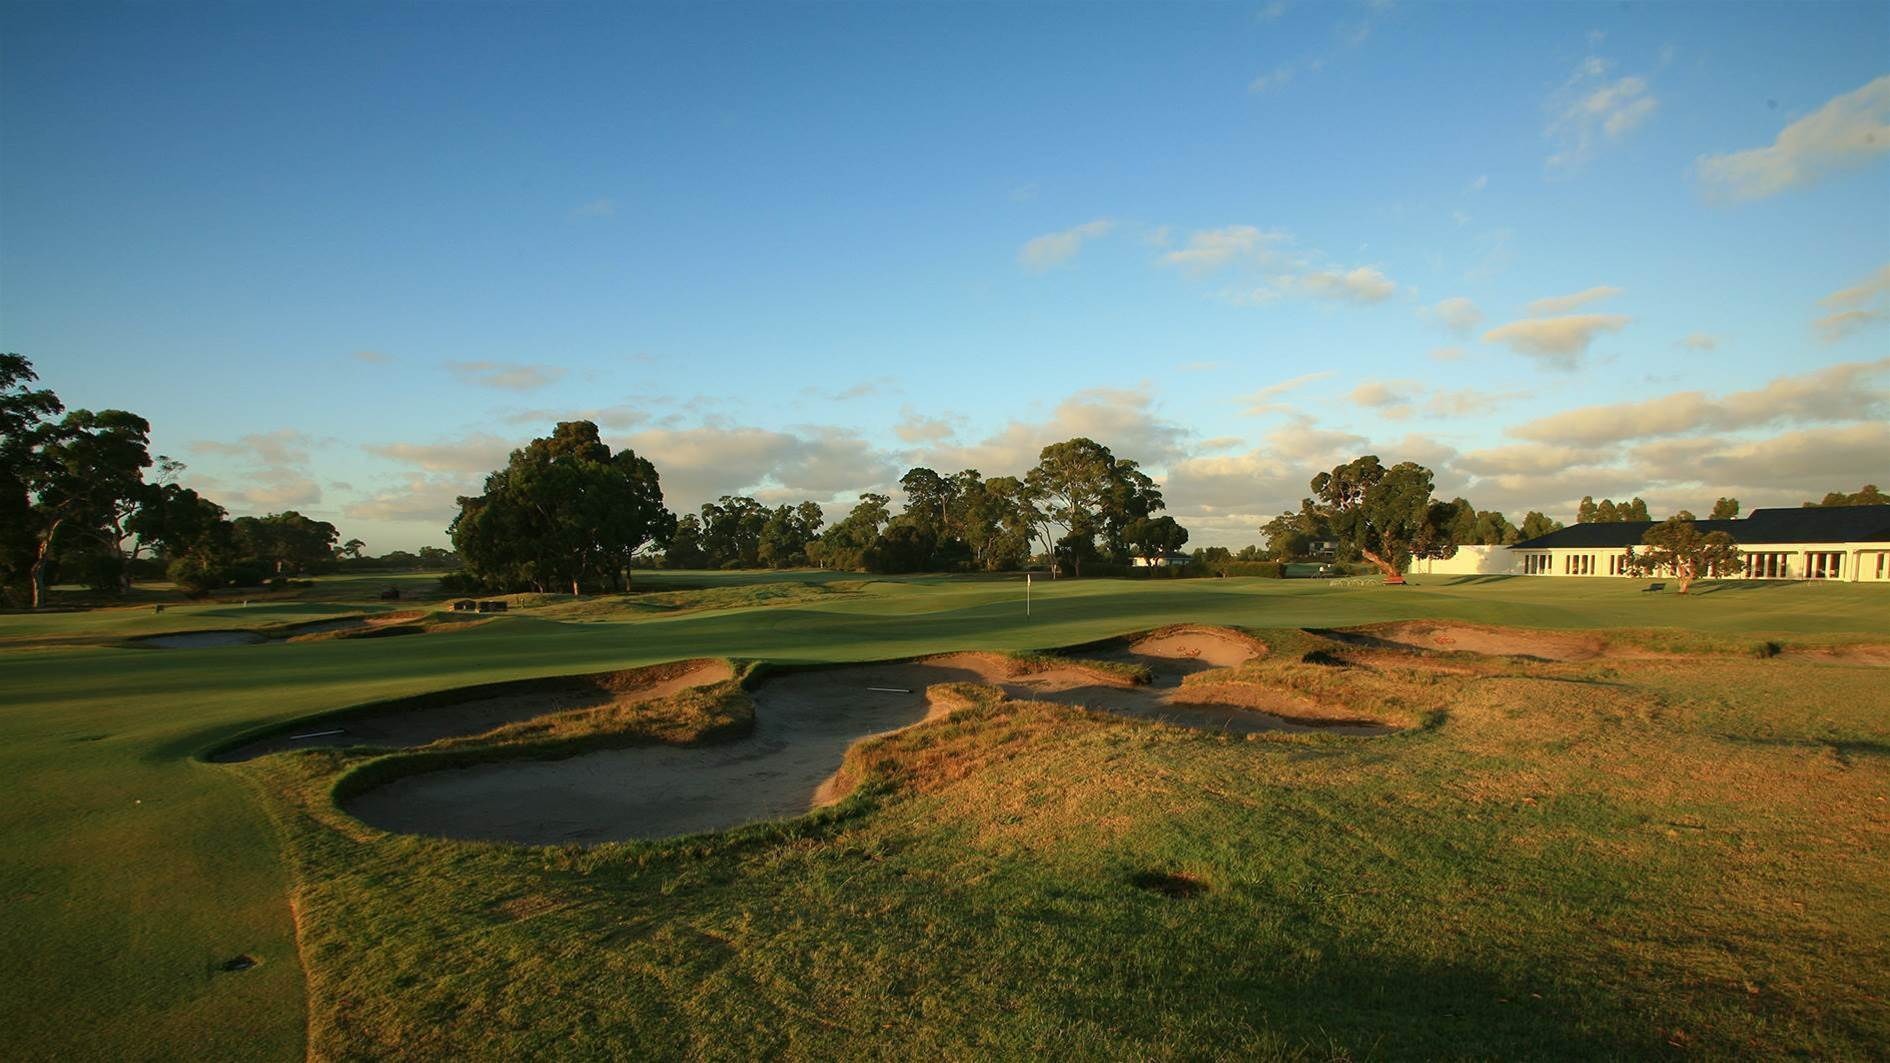 Kingston Heath, Victoria to host 2020 & 2022 Australian Opens